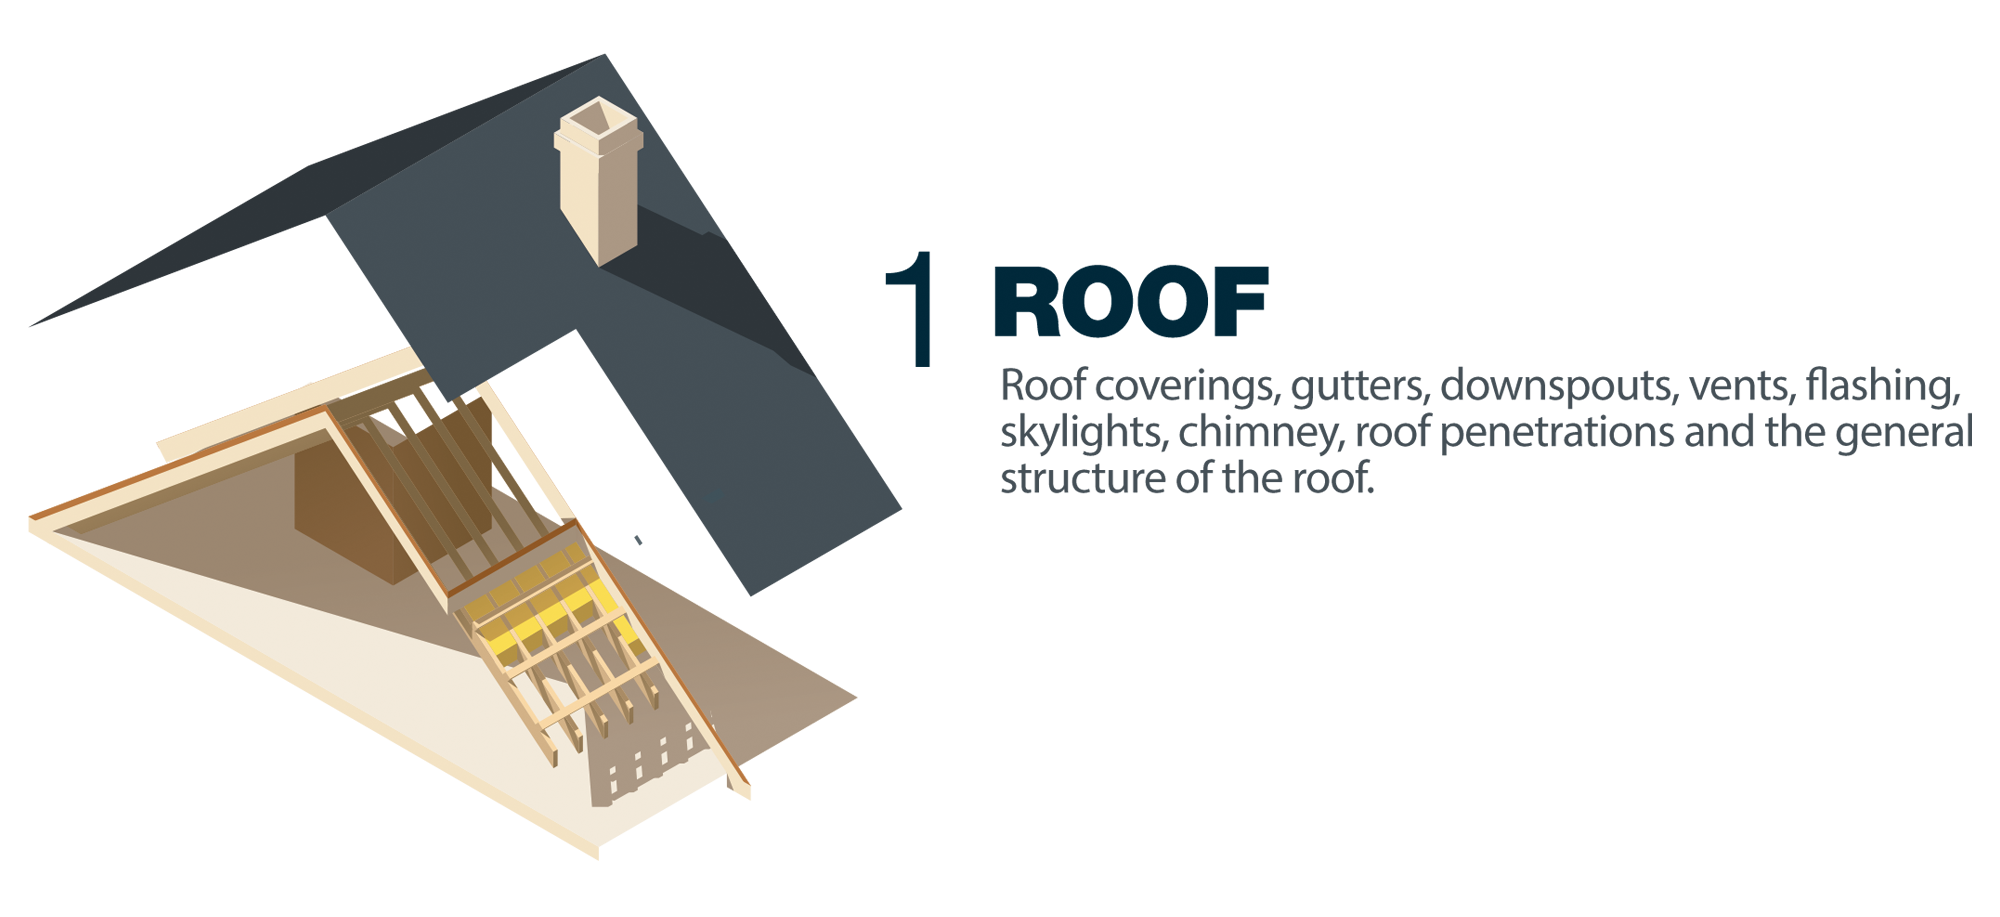 1-roof